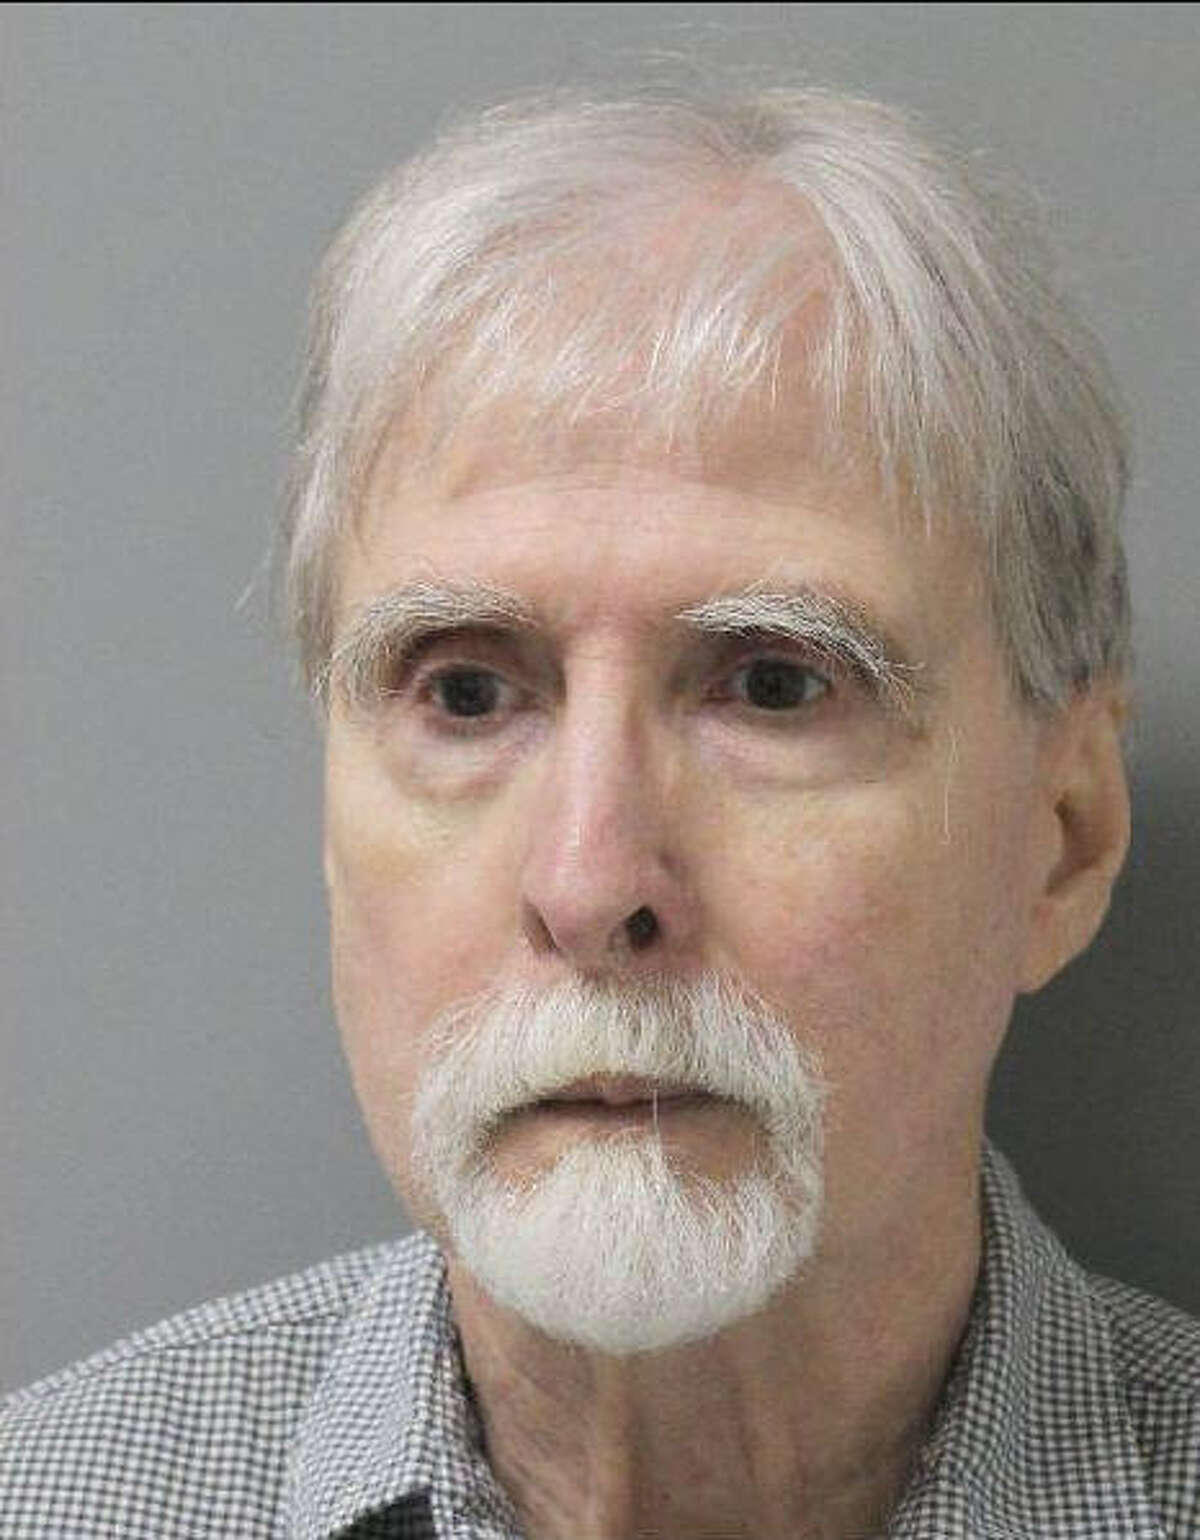 A Louisiana man opted to take a phallic approach to having a bad experience at a bookstore. Police in Monroe, La., say 71-year-old Nelson Webb Lentz left dildos around the religion section of a Books-A-Million and later acknowledged doing so. Lentz is free on $500 bond on a charge of criminal mischief.